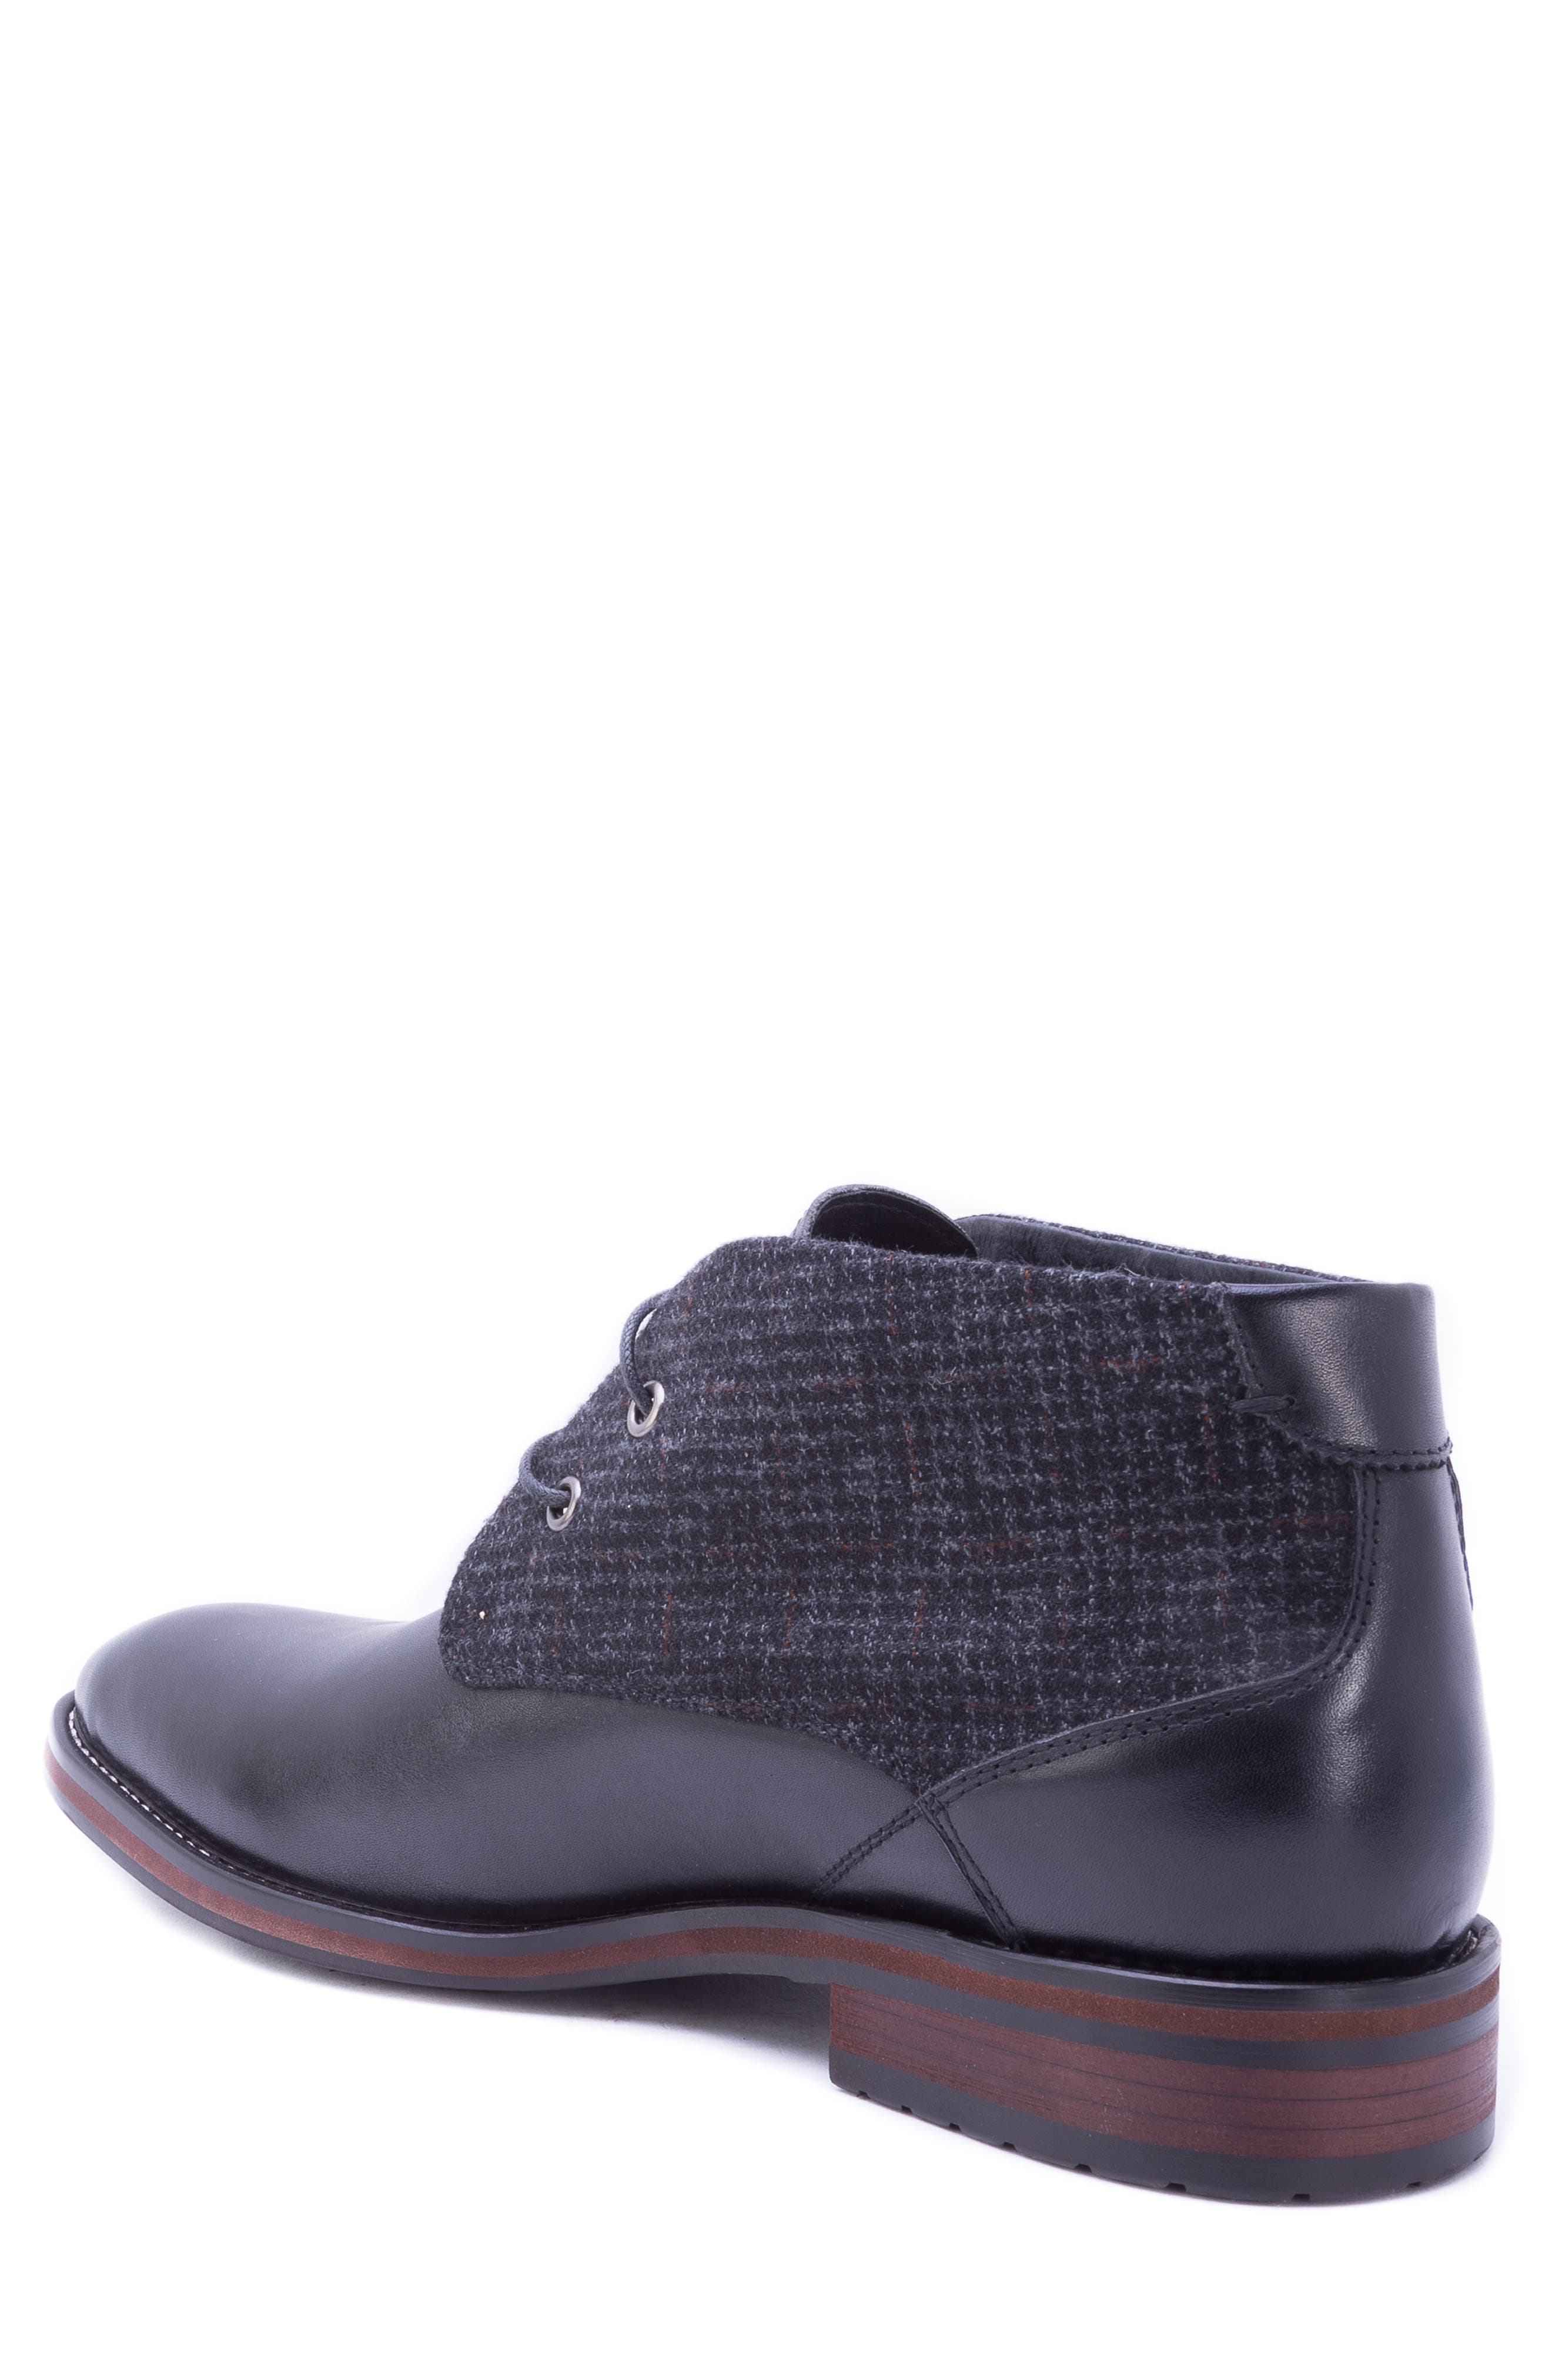 Nebot Chukka Boot,                             Alternate thumbnail 2, color,                             BLACK LEATHER/ FABRIC